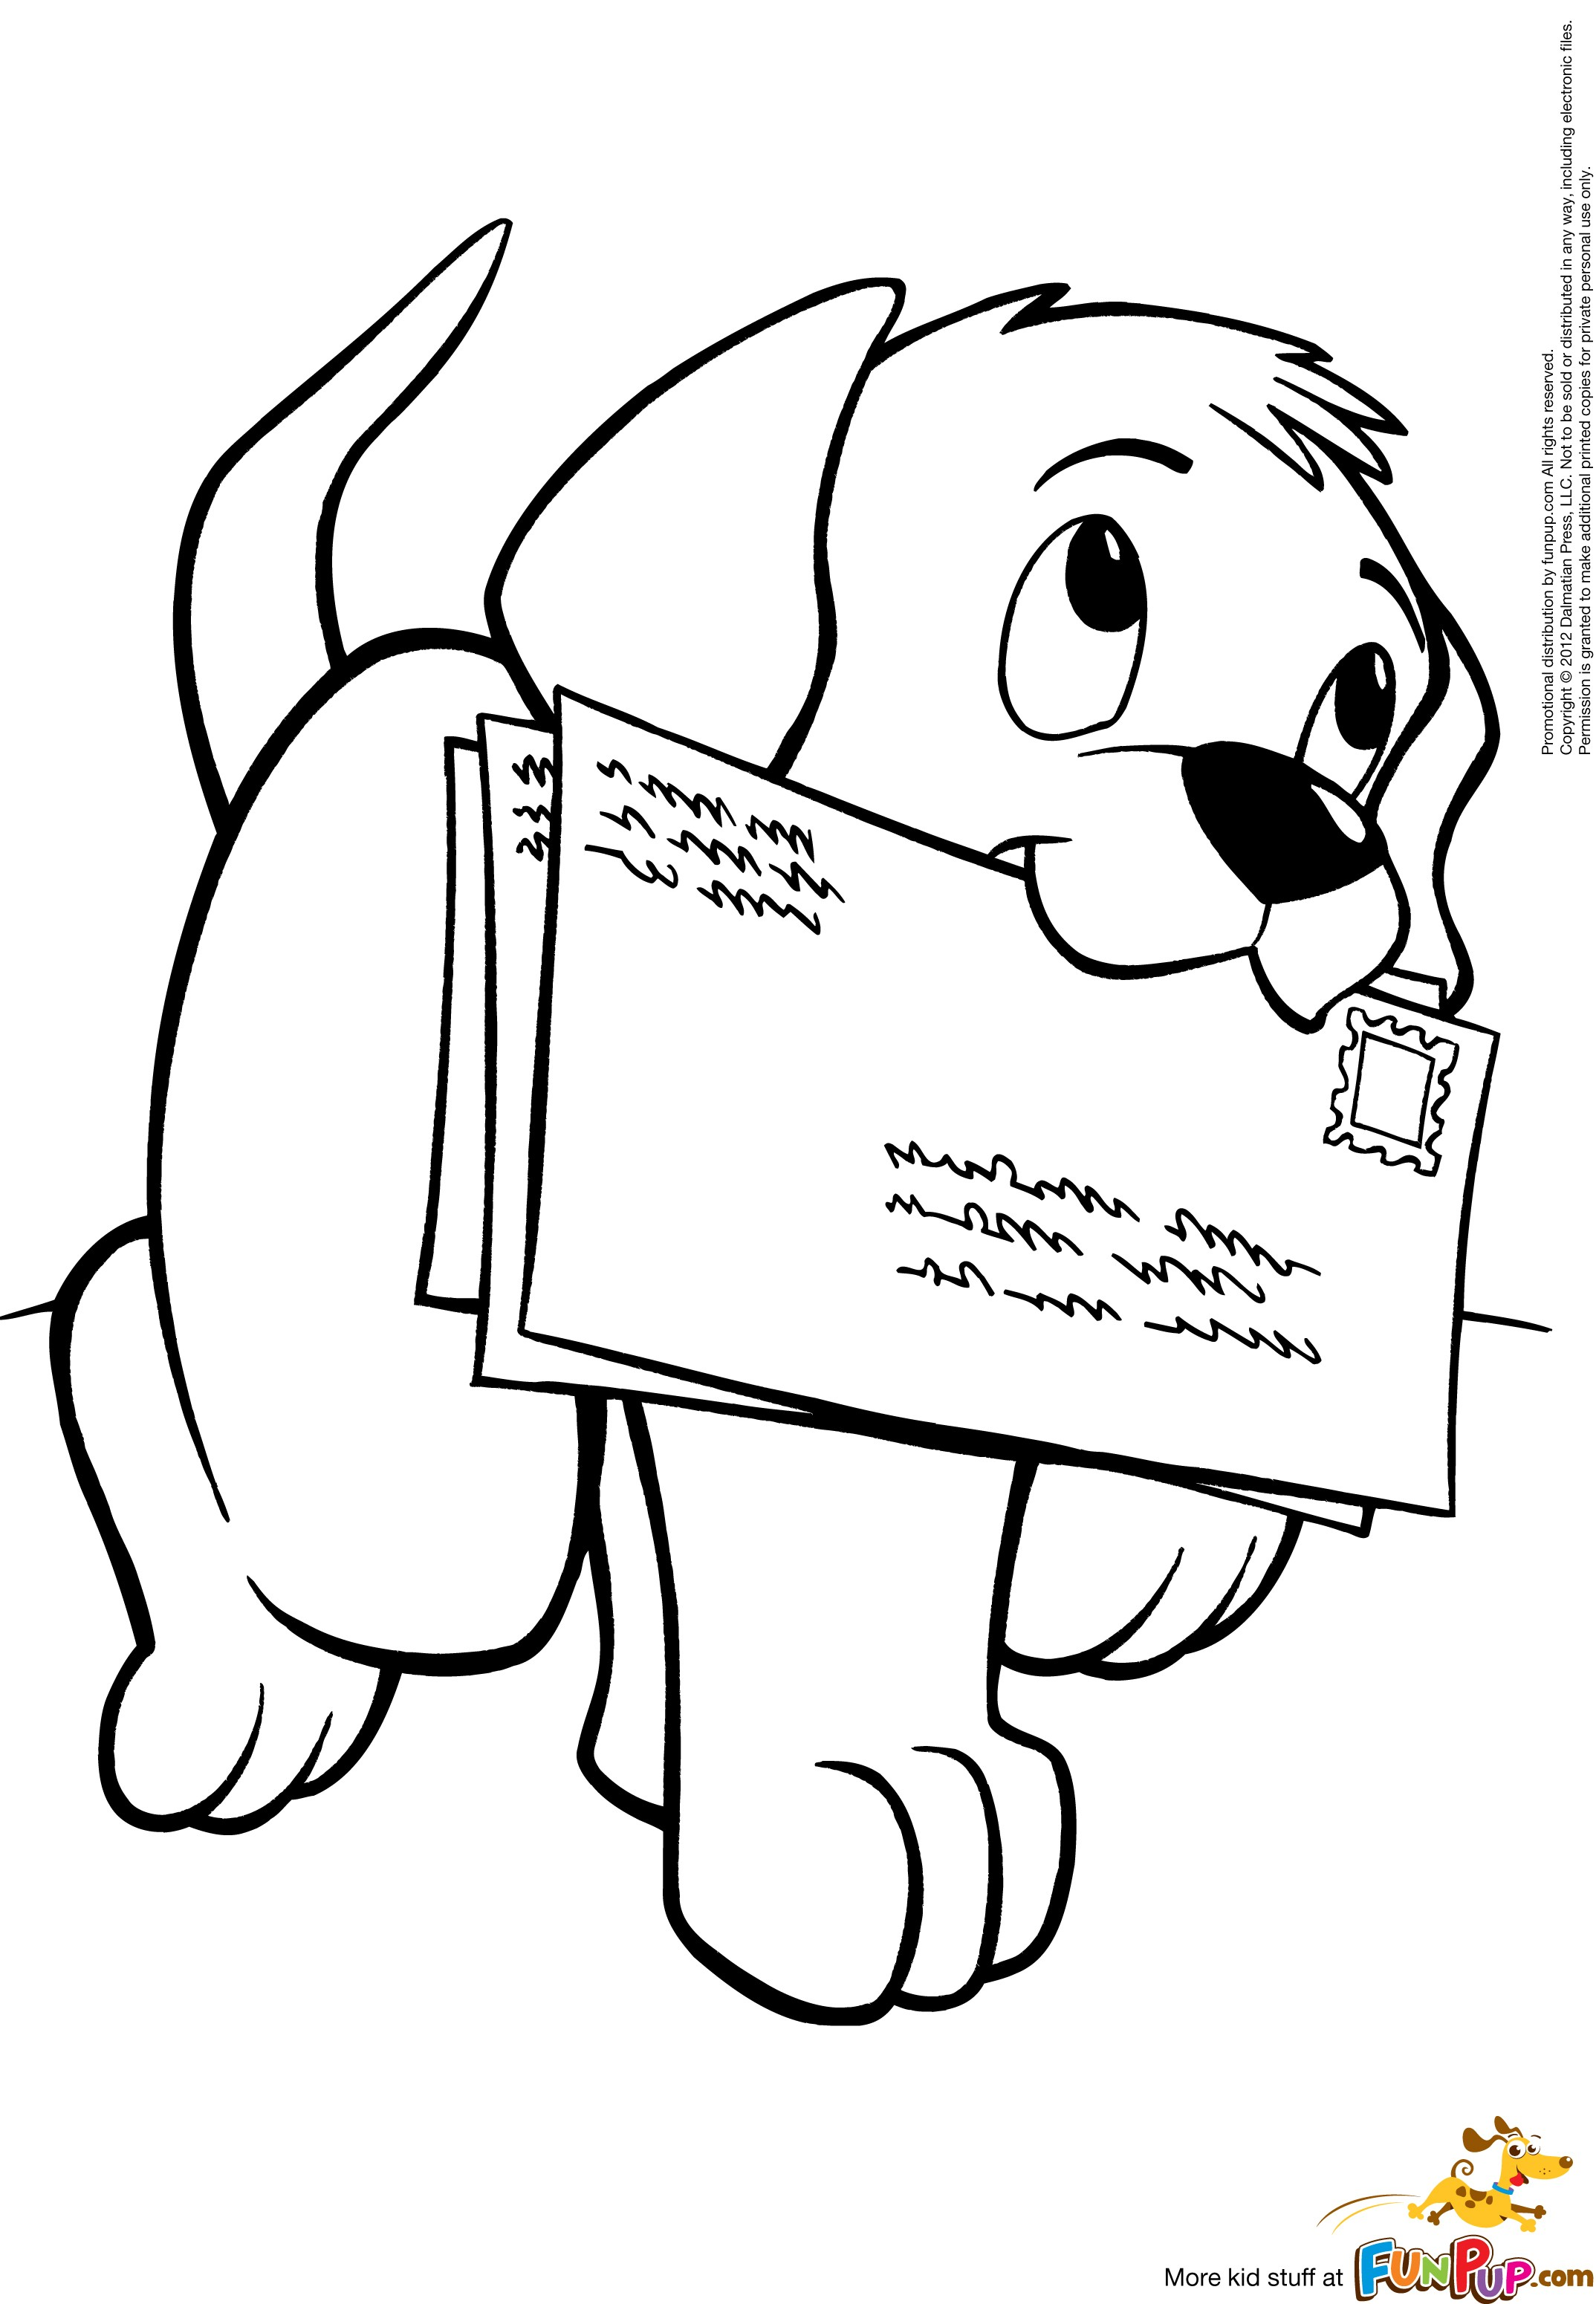 Puppy Drawing For Kids at GetDrawings.com | Free for personal use ...